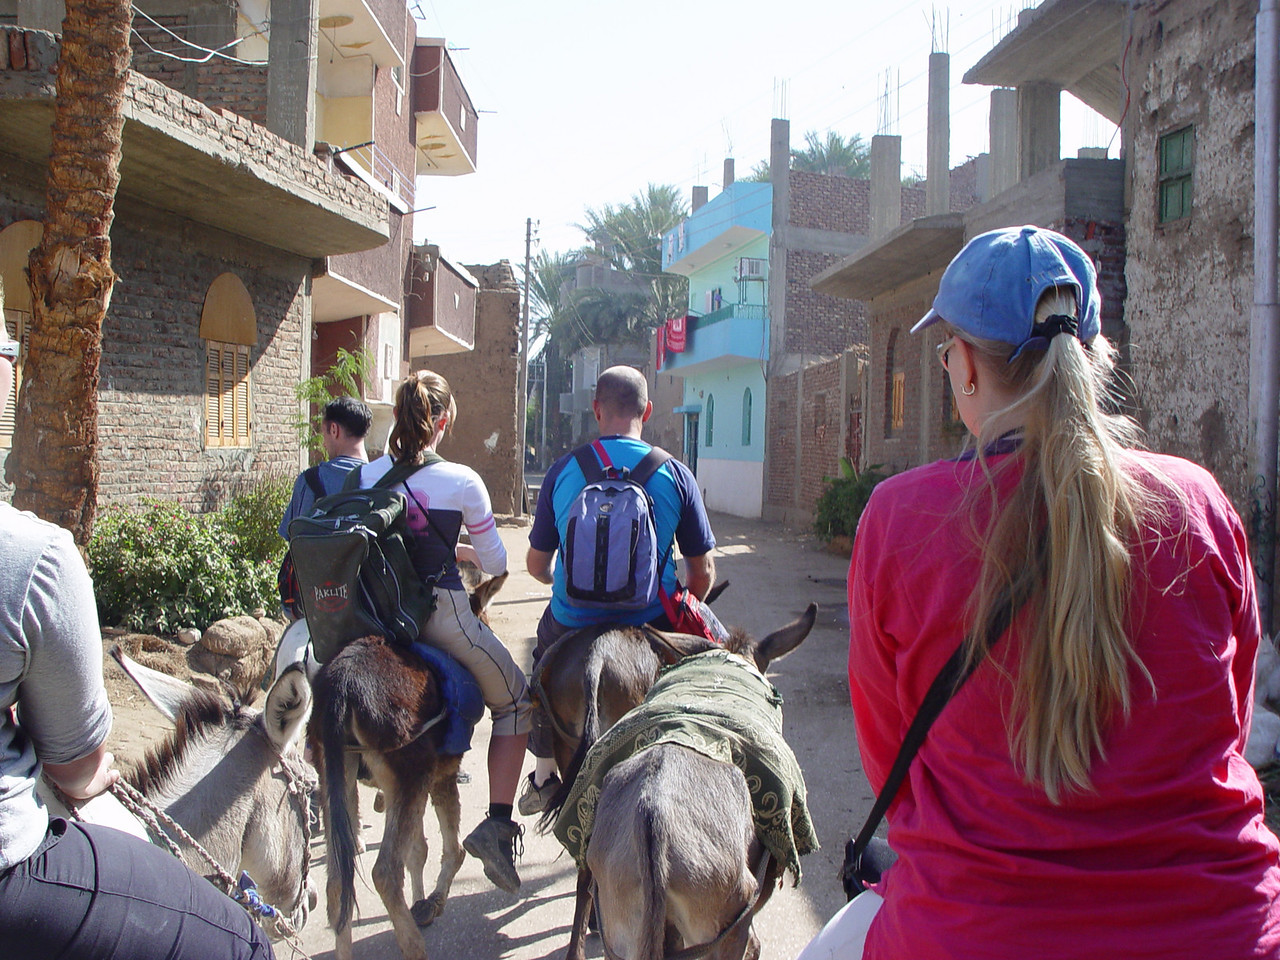 g) we ride through more villages and get off our donkey's when we reach Luxor, then have some lunch.